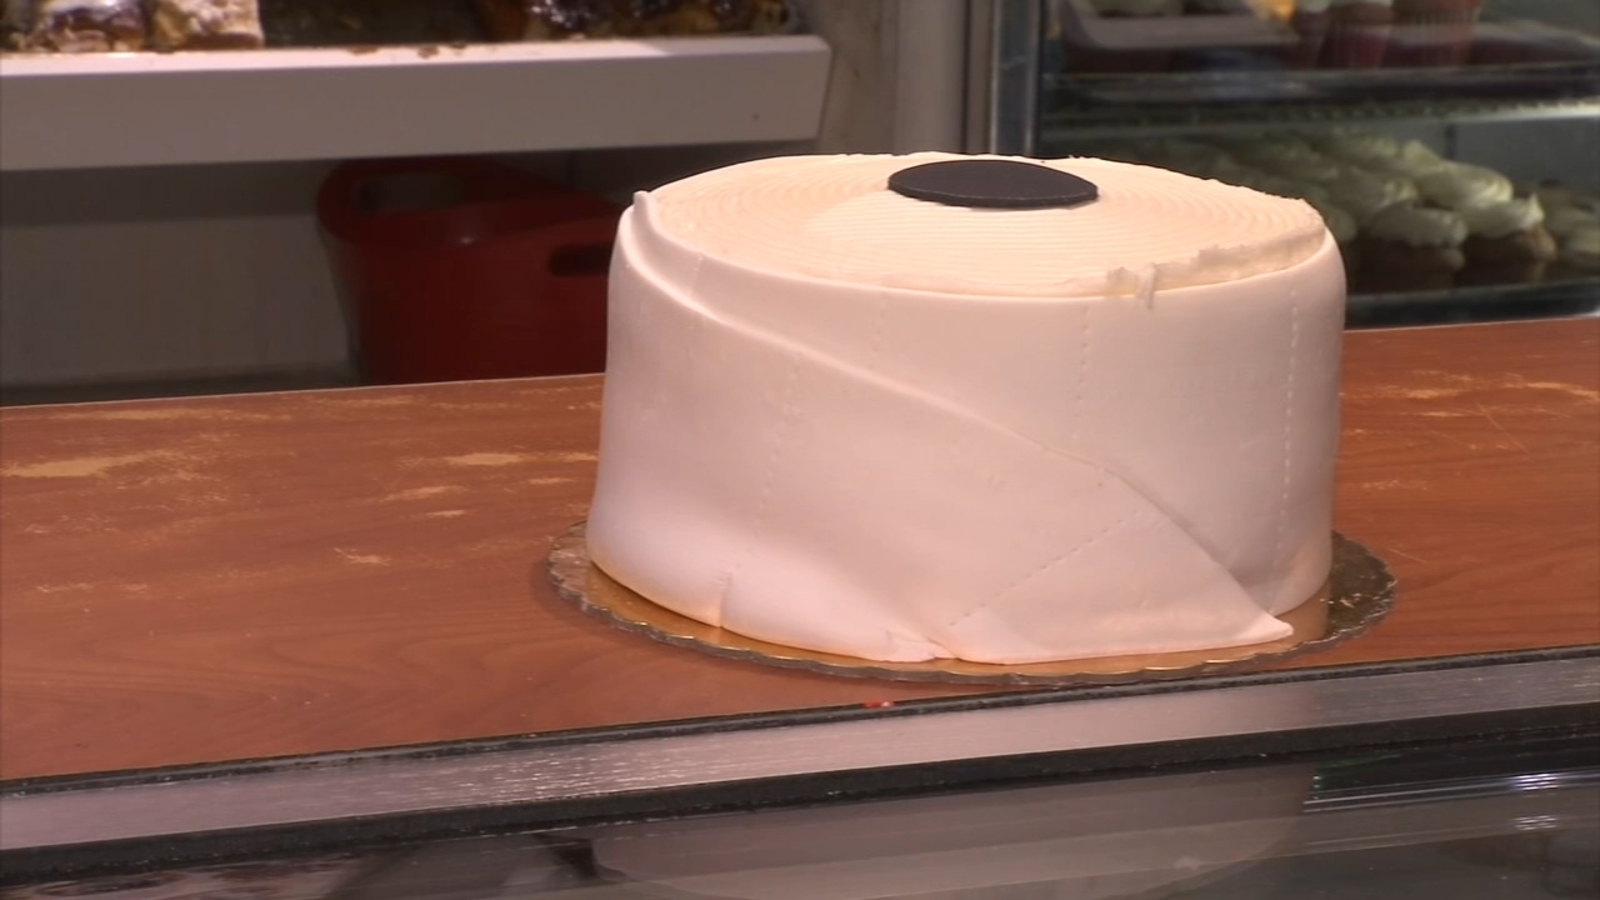 A Laugh During Covid 19 Scare Traub S Bakery In Prospect Park Delaware County Is Selling Toilet Paper Cakes 6abc Philadelphia